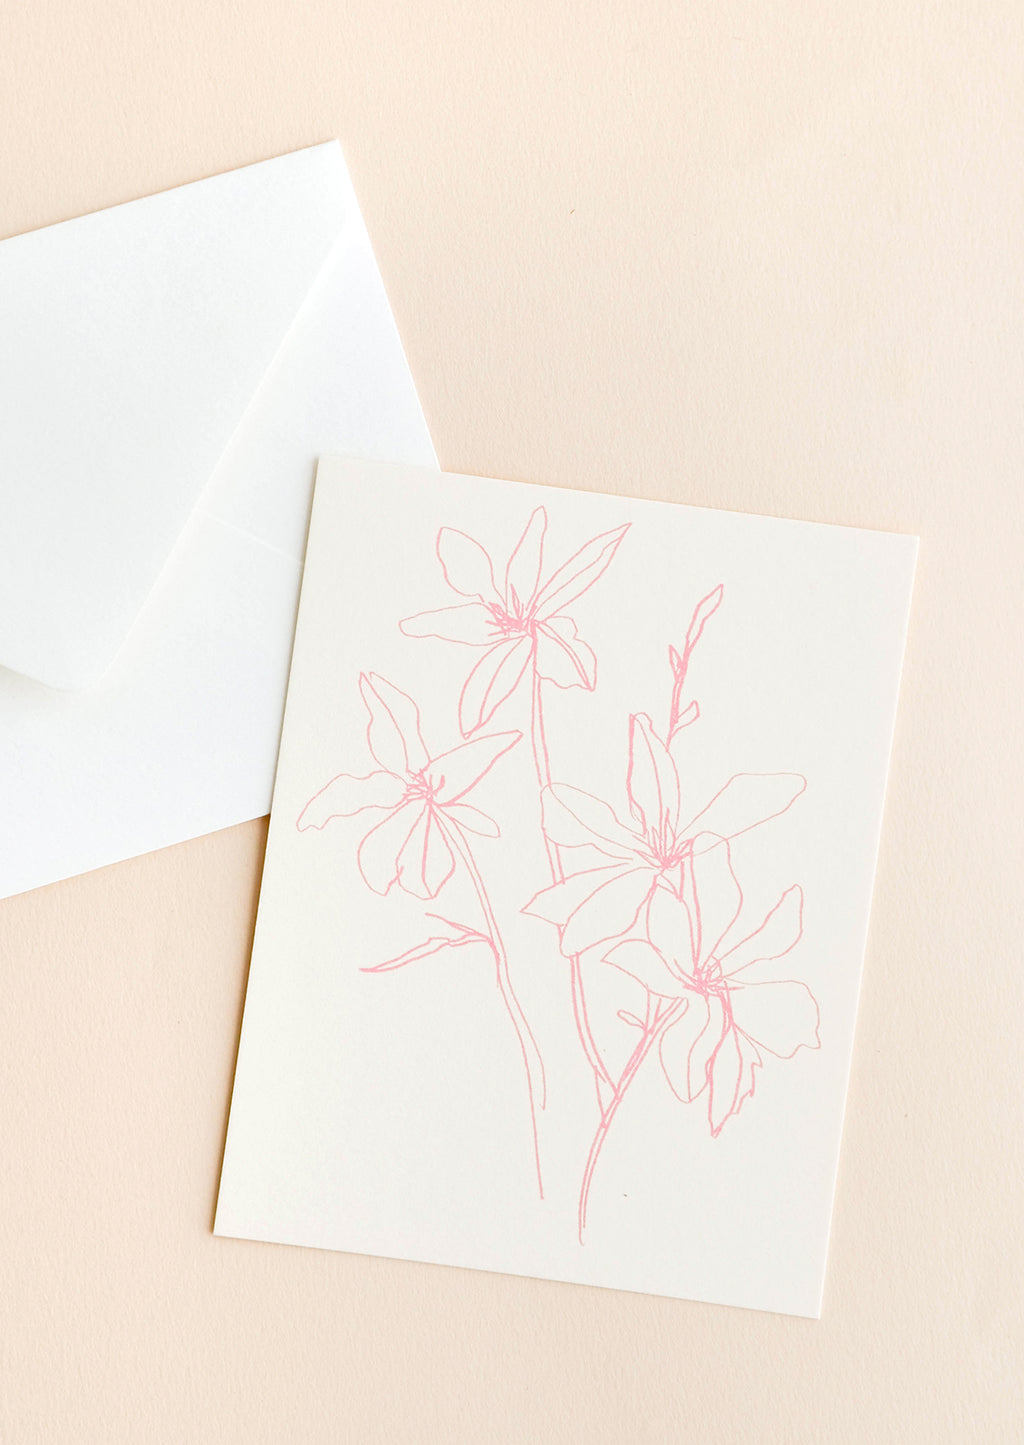 2: Notecard featuring drawing of flowers in pink and accompanying envelope.